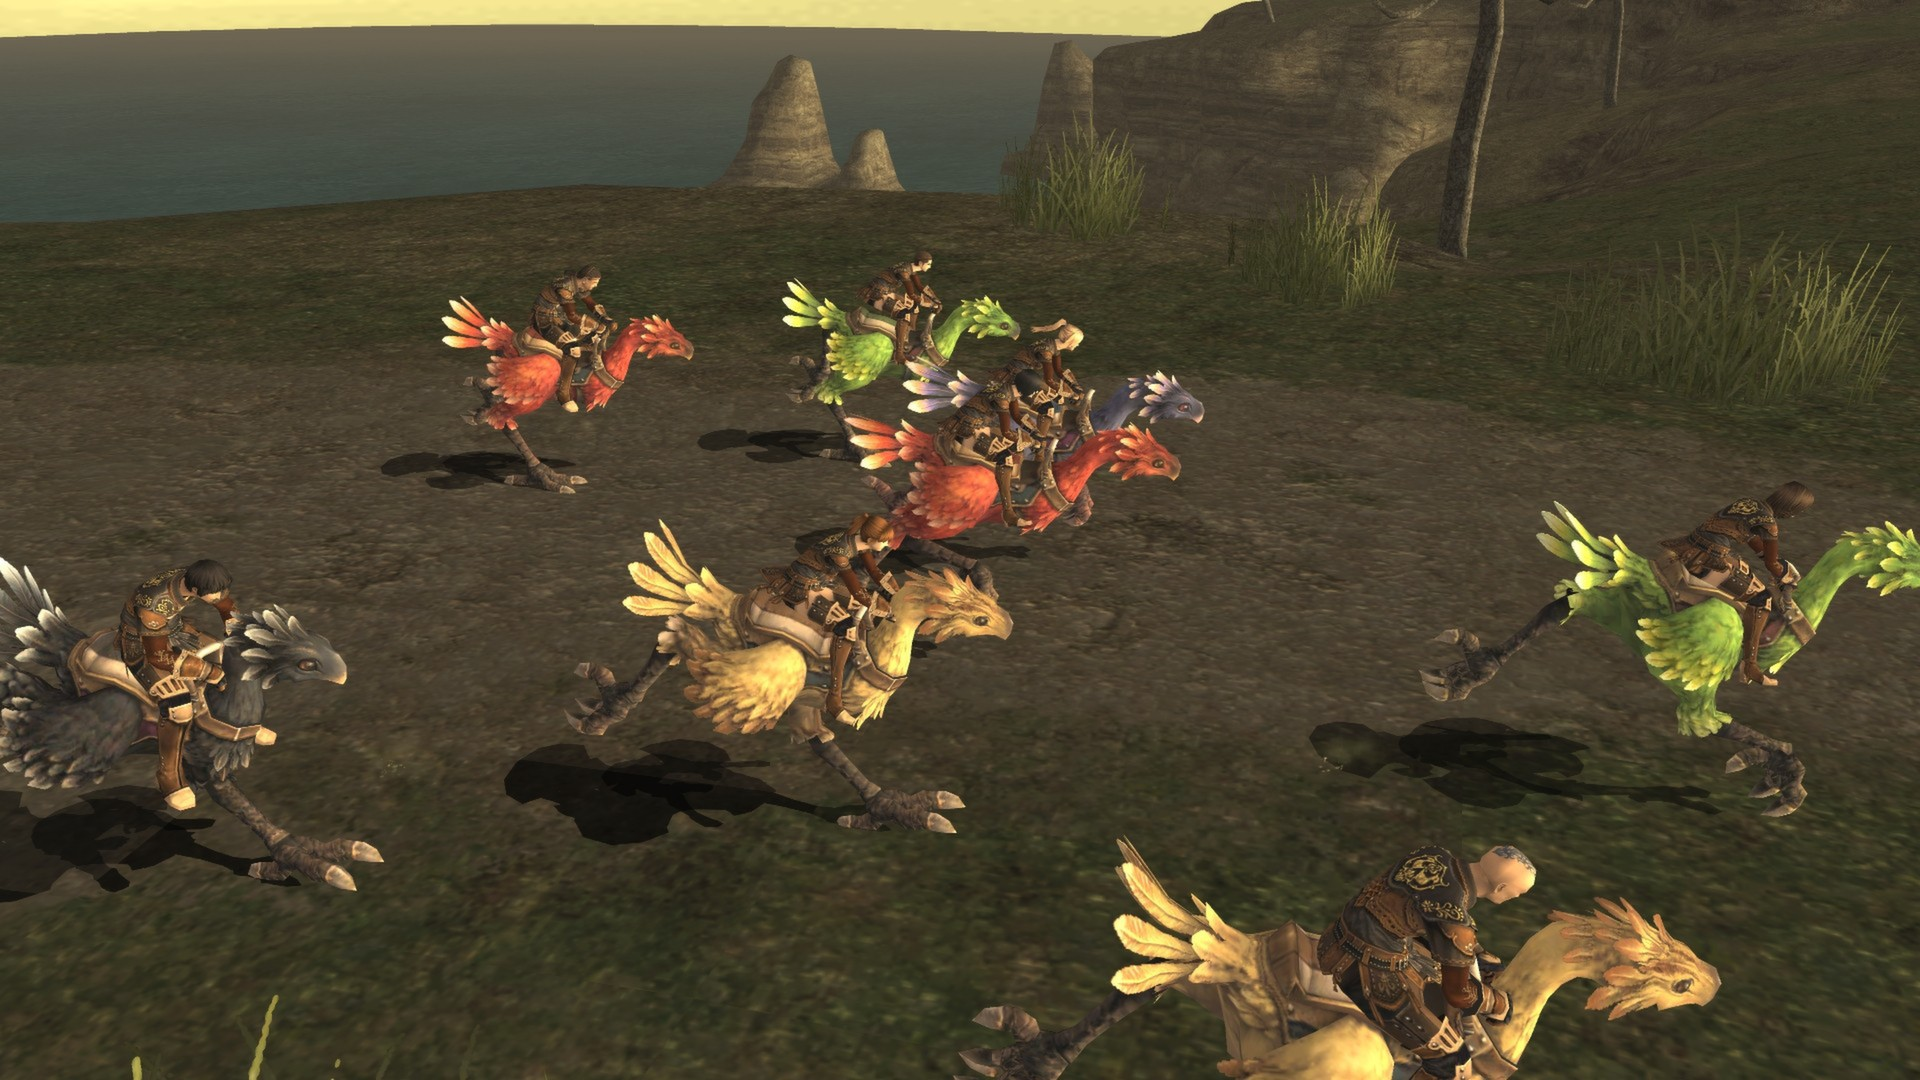 Square Enix addresses possibility of offline version of Final Fantasy XI screenshot